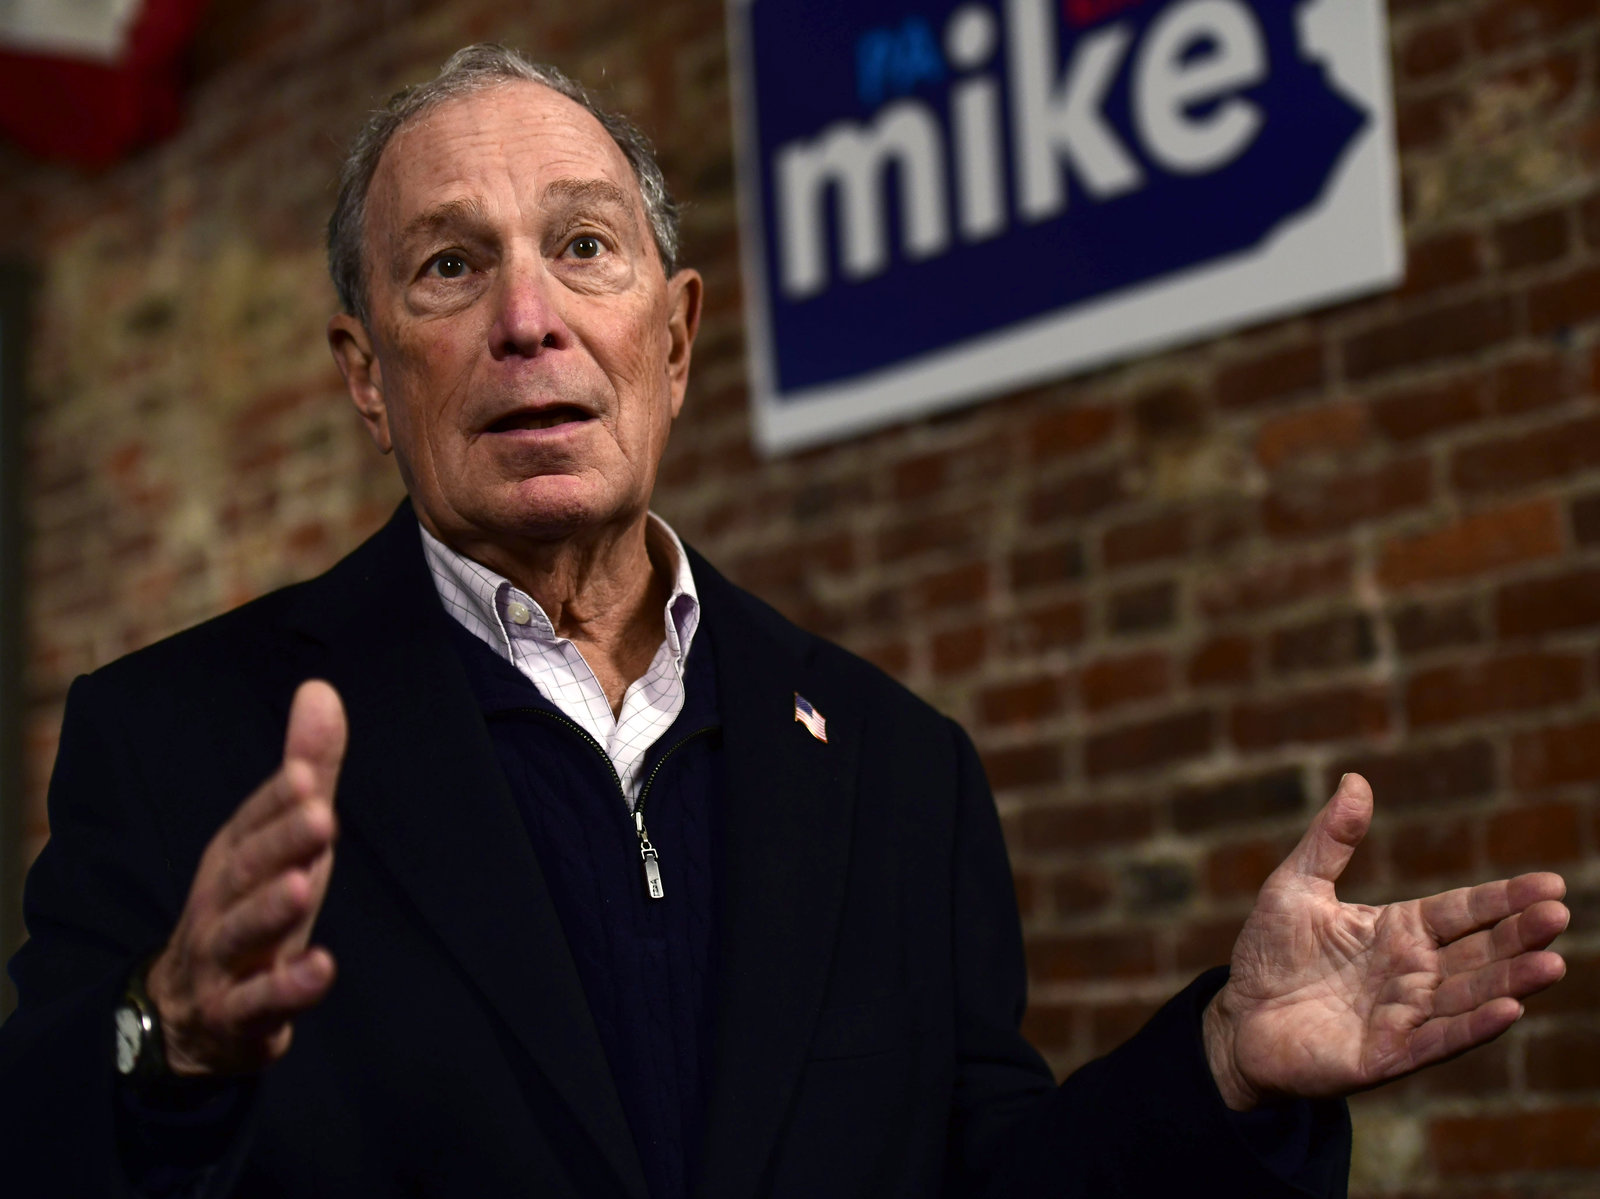 """Bloomberg Owes An Apology for """"Cowboy Hat and Shotgun"""" Comment"""